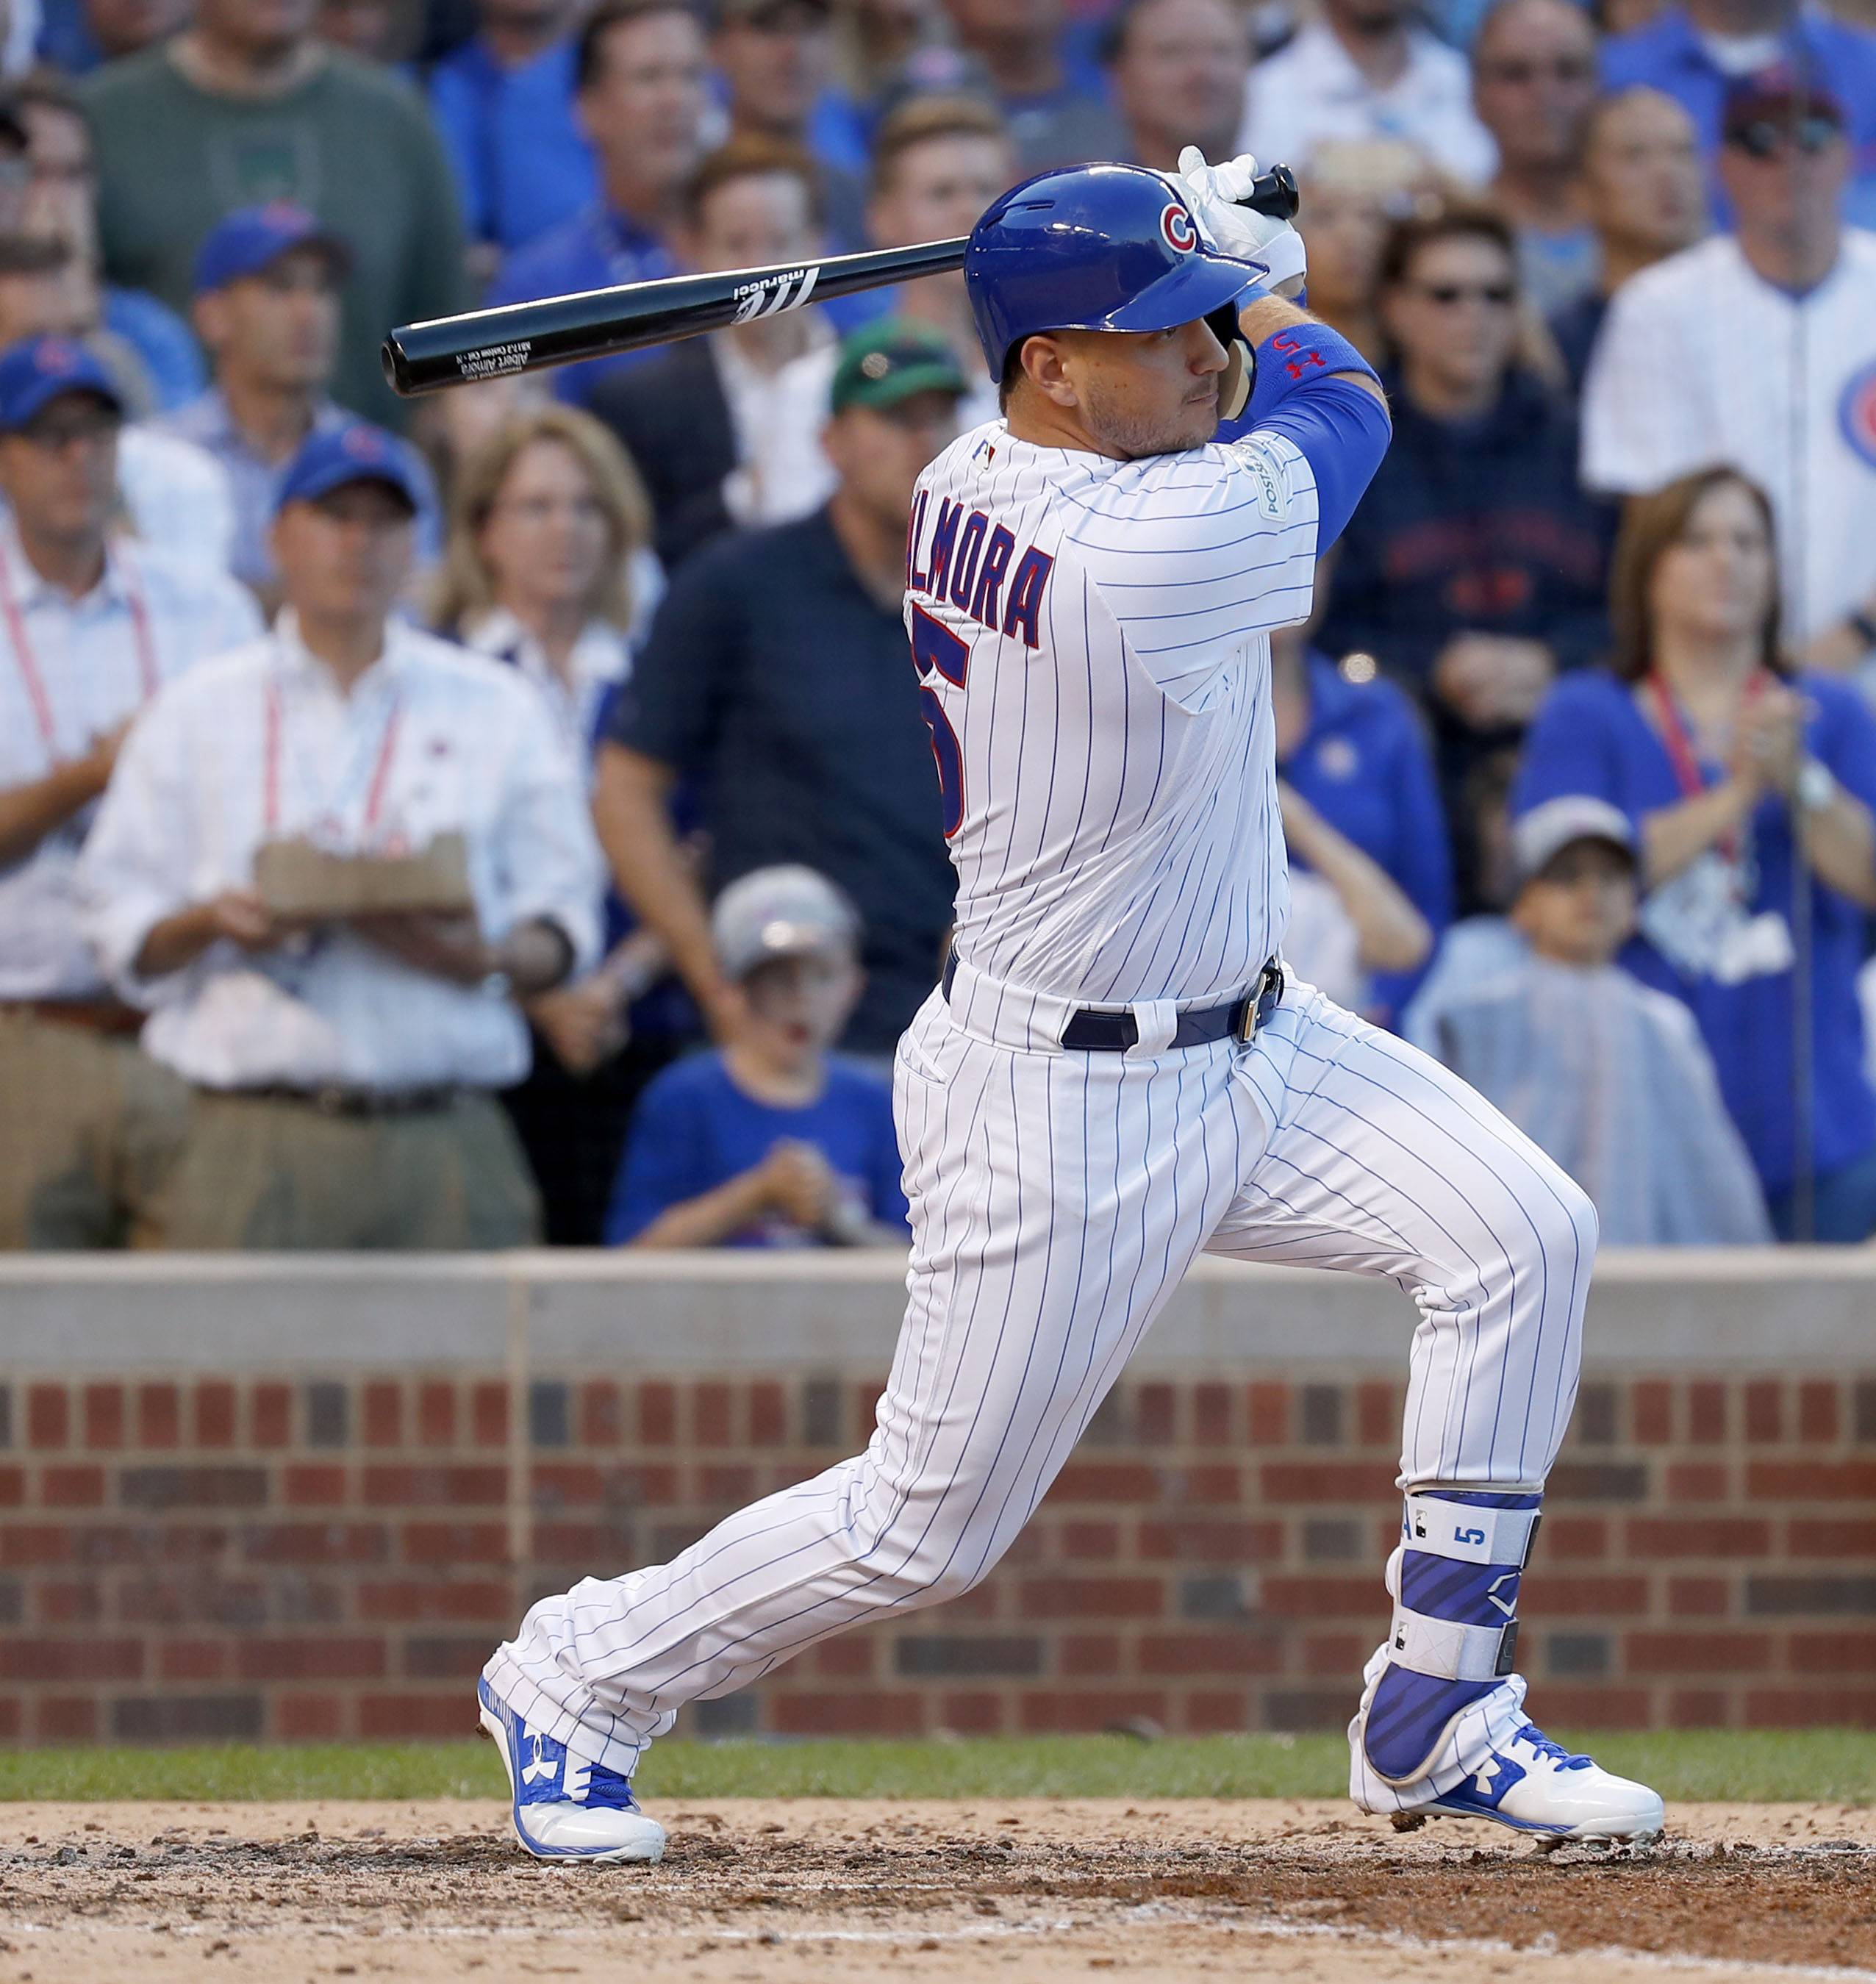 Center fielder Albert Almora Jr. will bat leadoff for the Chicago Cubs in Game 4 against the Los Angeles Dodgers.